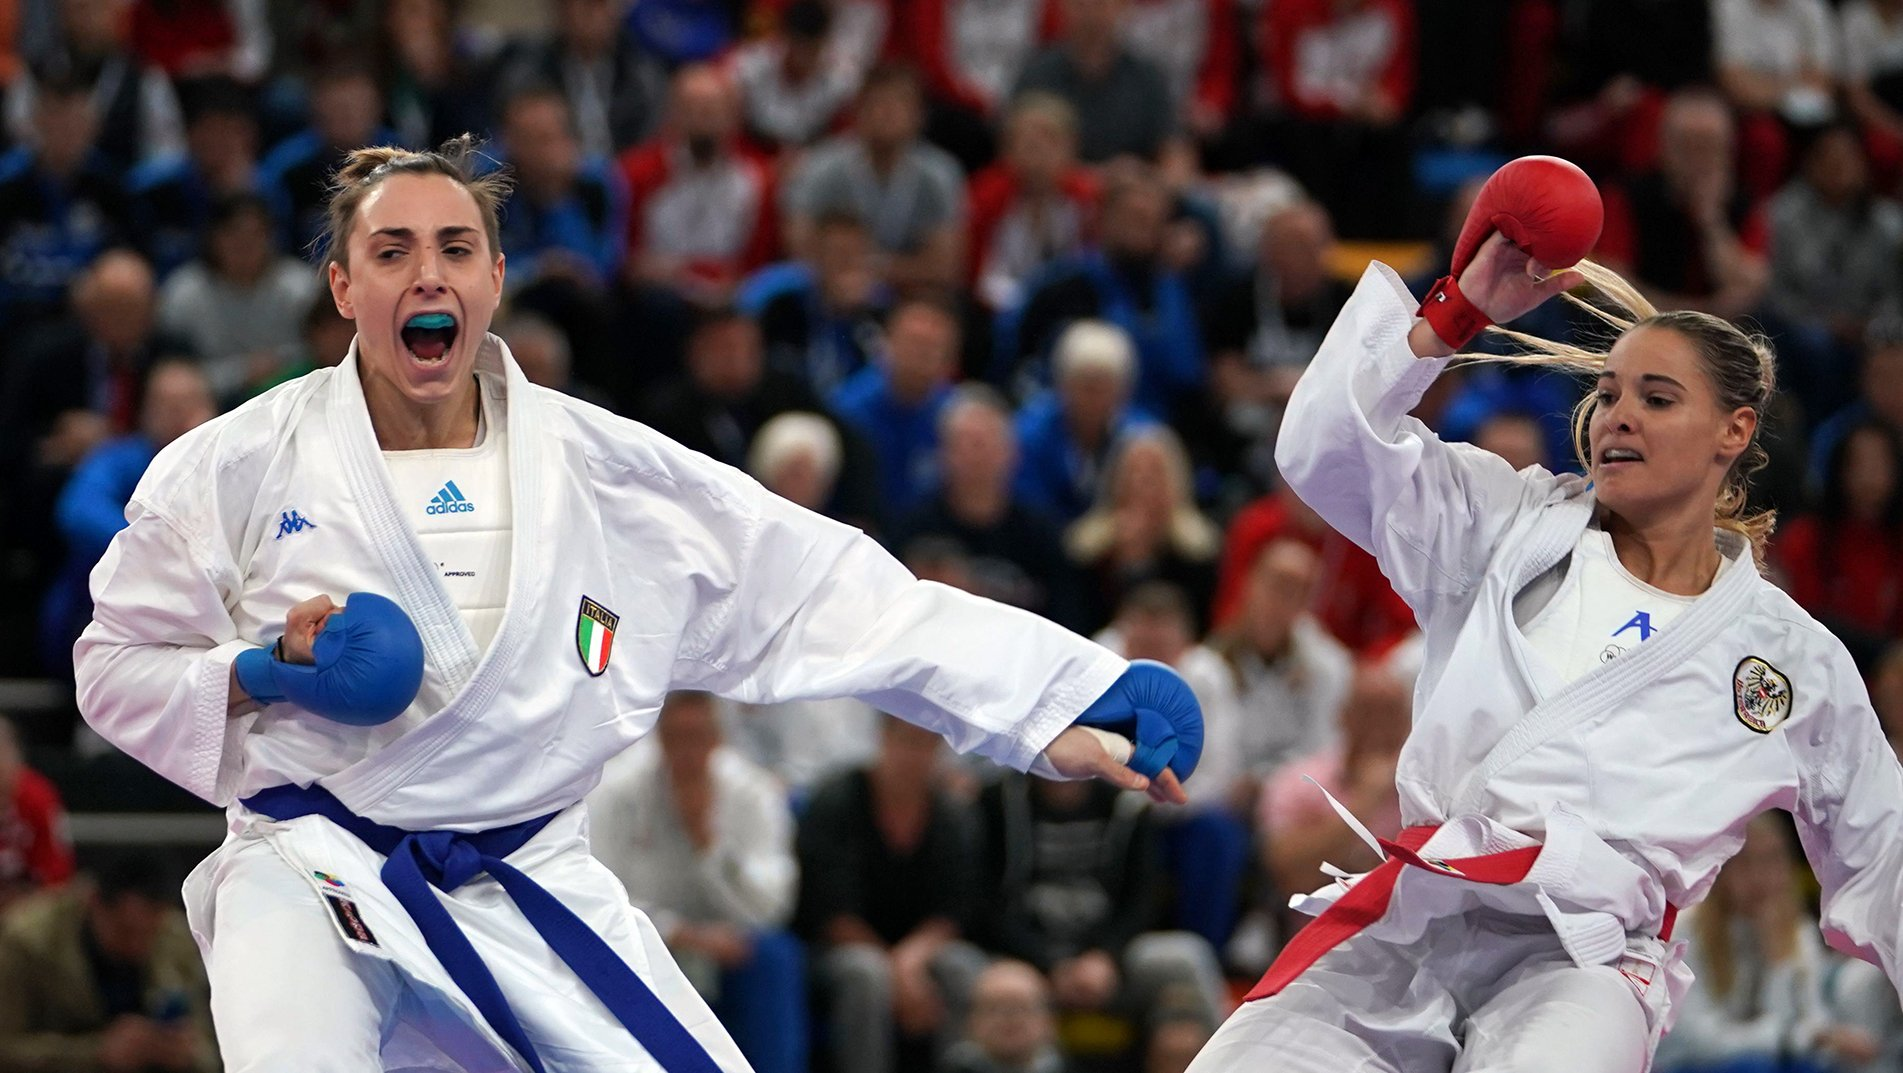 Surprising results in final day of Karate 1-Series A Santiago